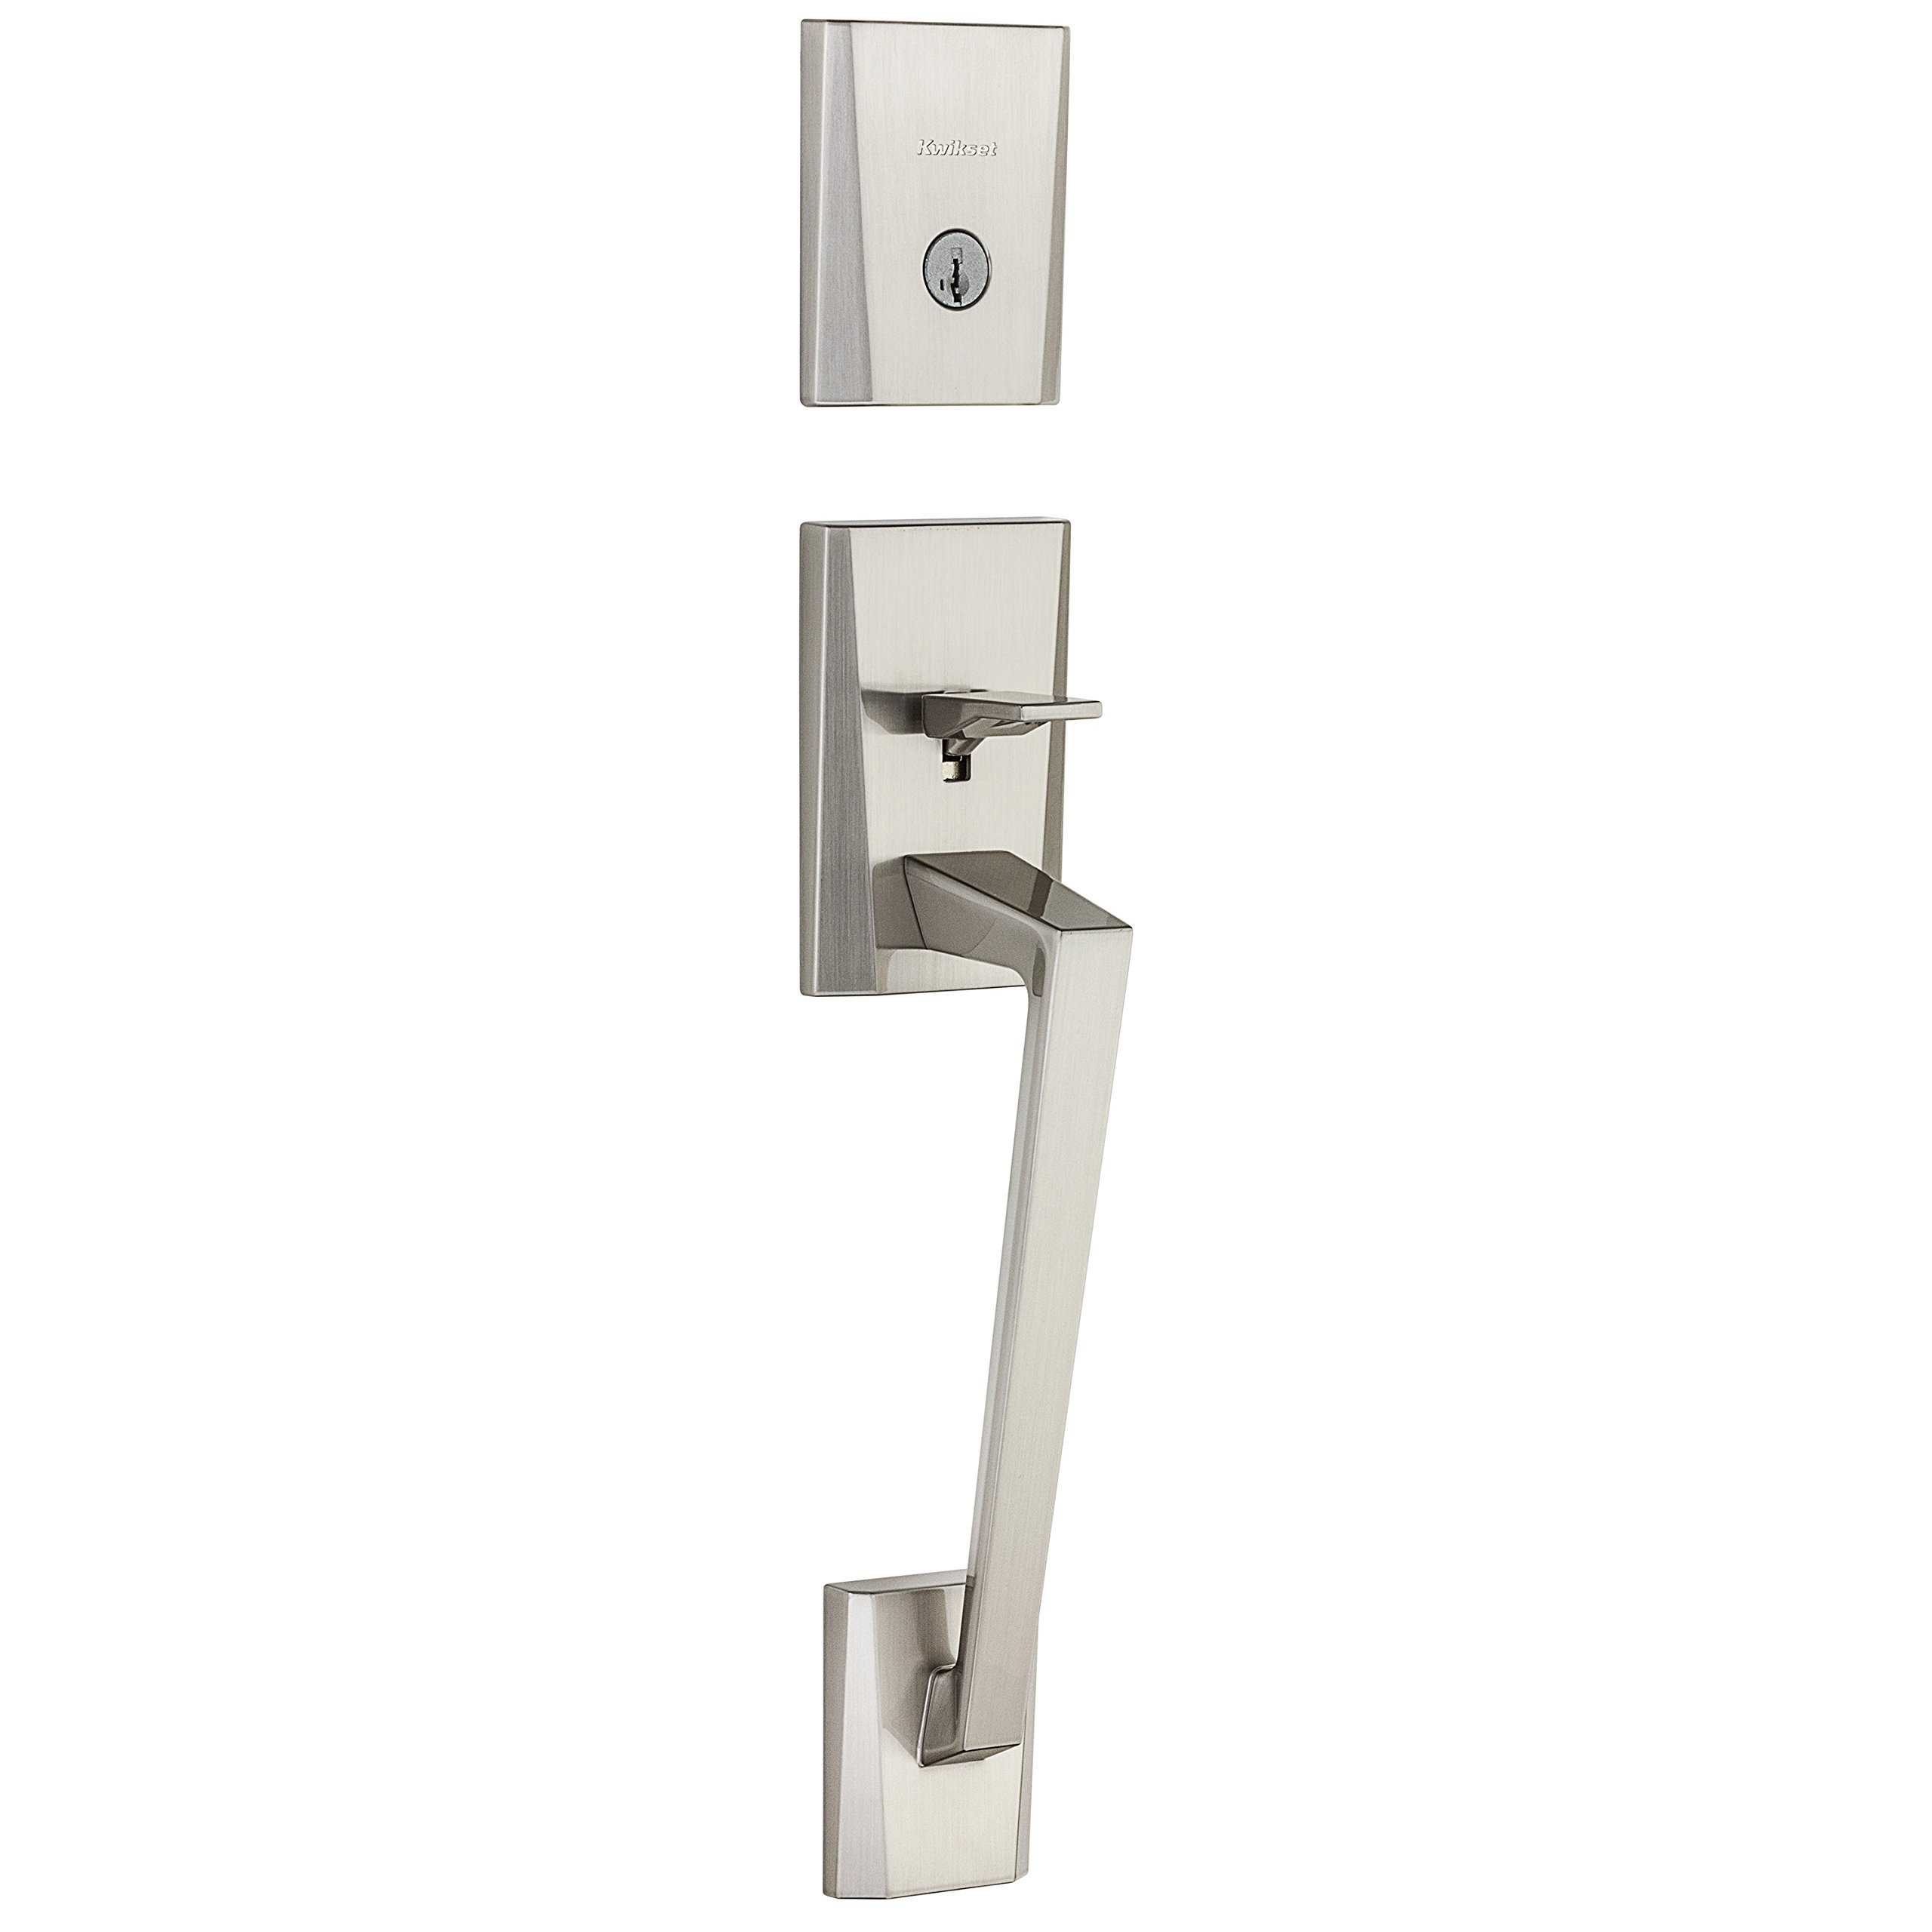 Kwikset 98180-003 Camino Single Cylinder Low Profile Handleset with Halifax Lever Featuring Smartkey In Satin Nickel by Kwikset (Image #2)